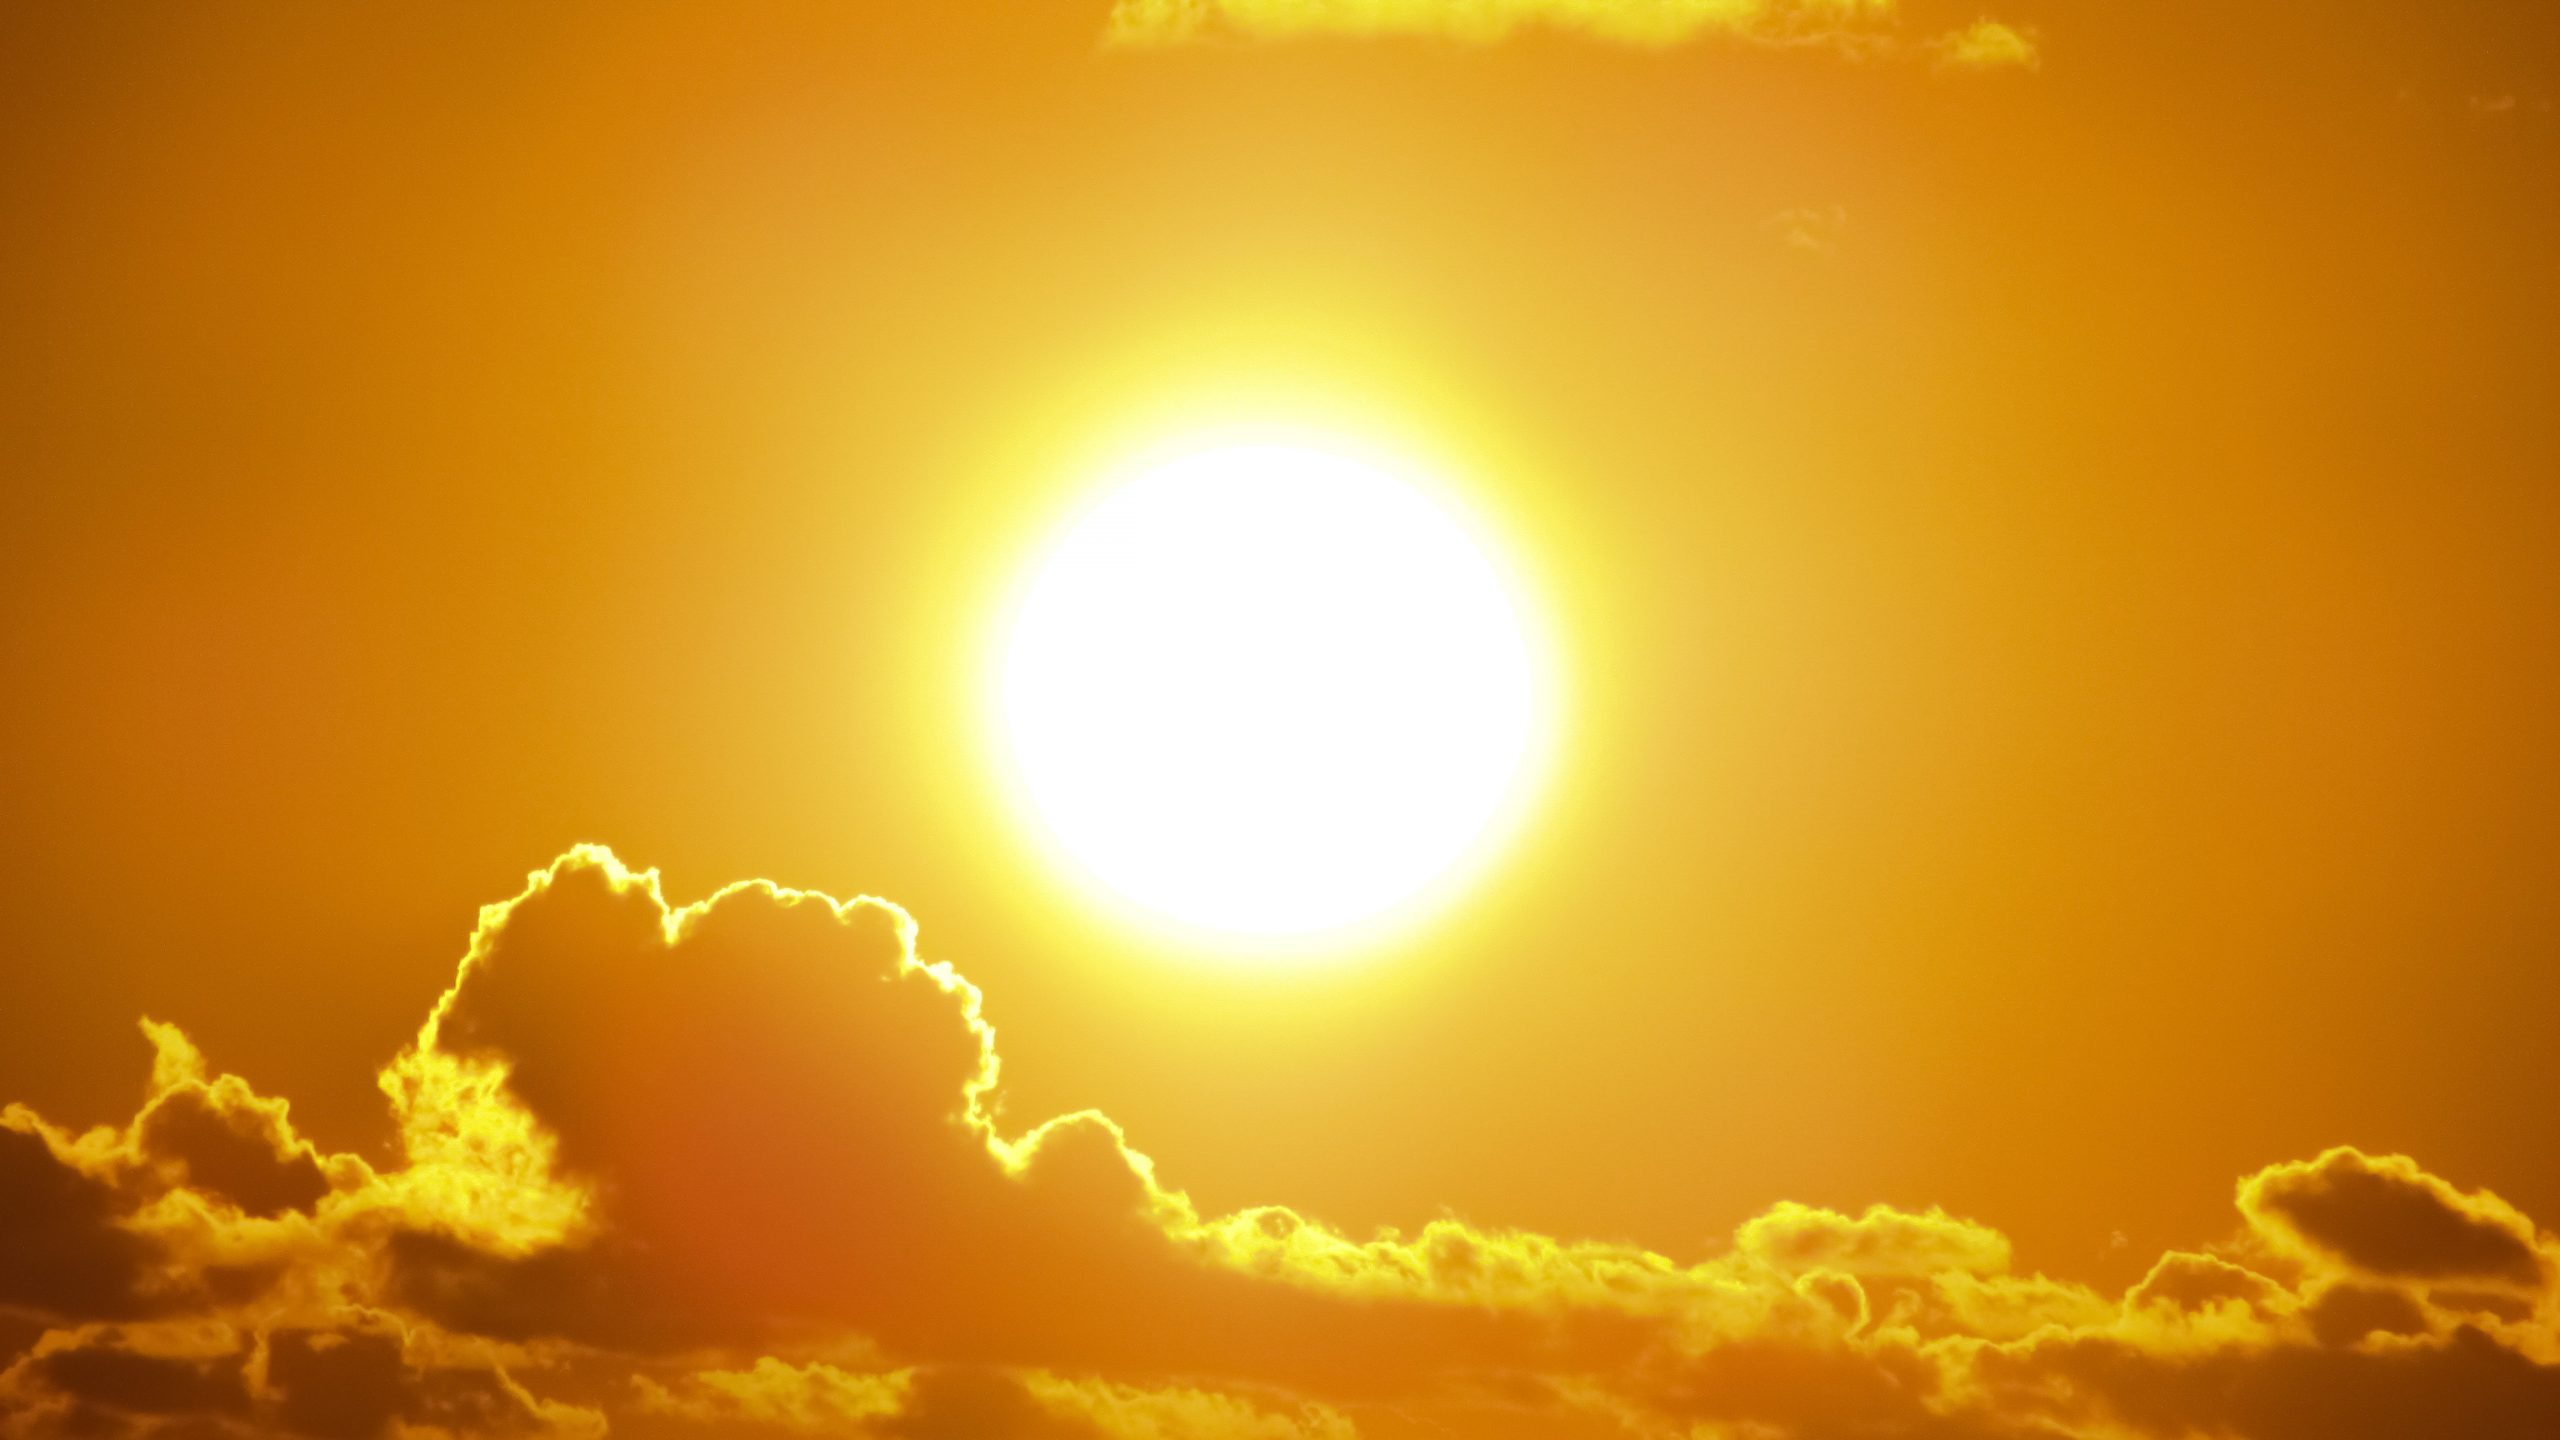 Picture of the sun; nutrients for a healthy immune system.